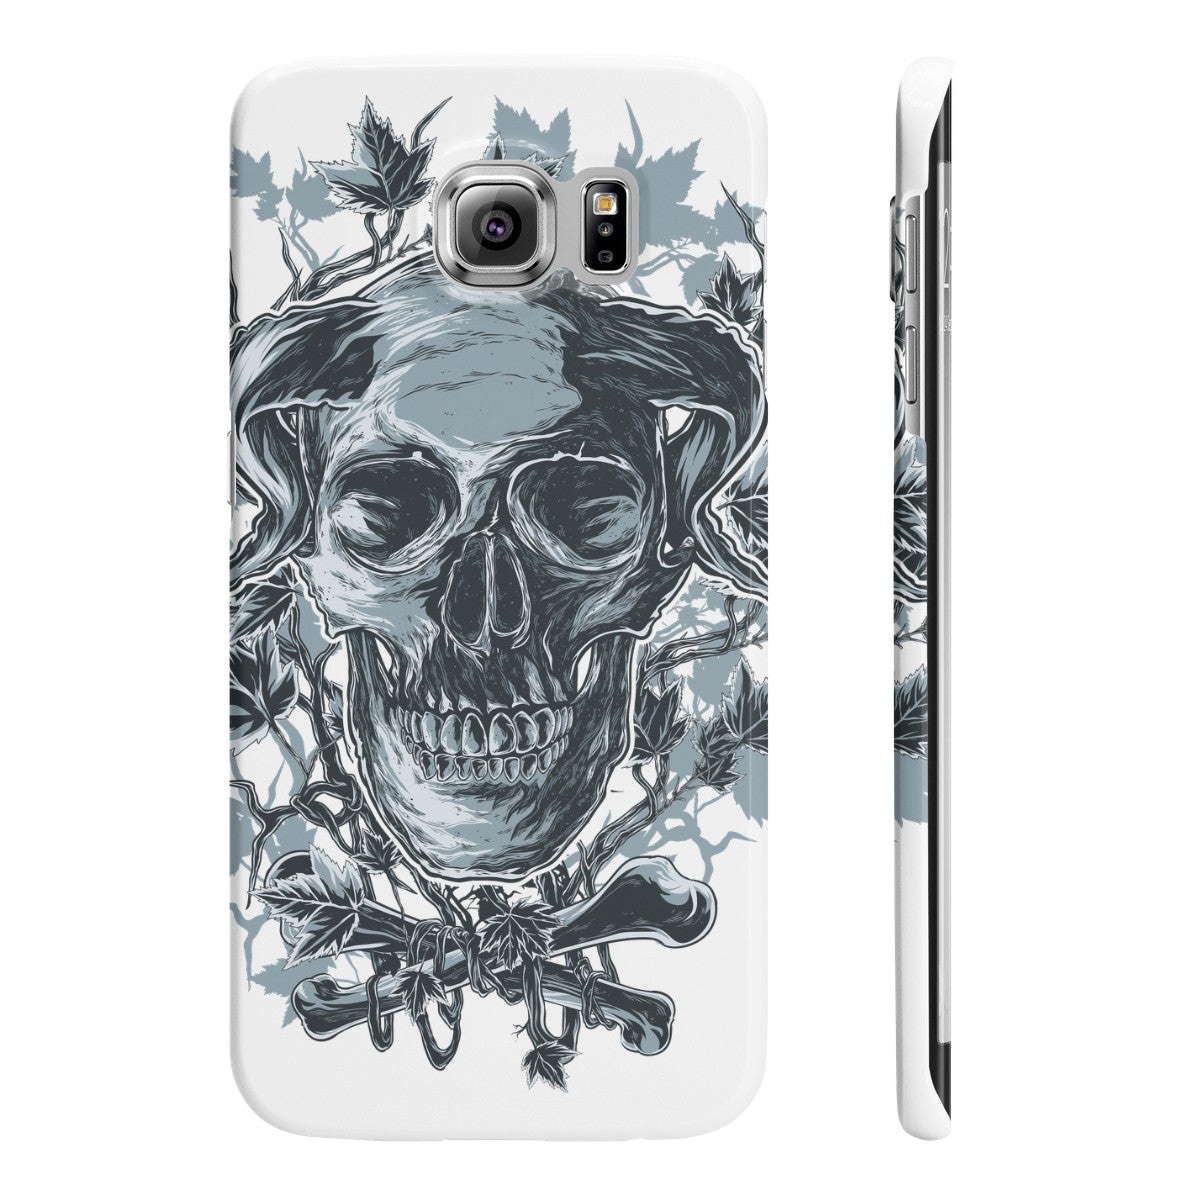 Horned Skull Slim Phone Cases